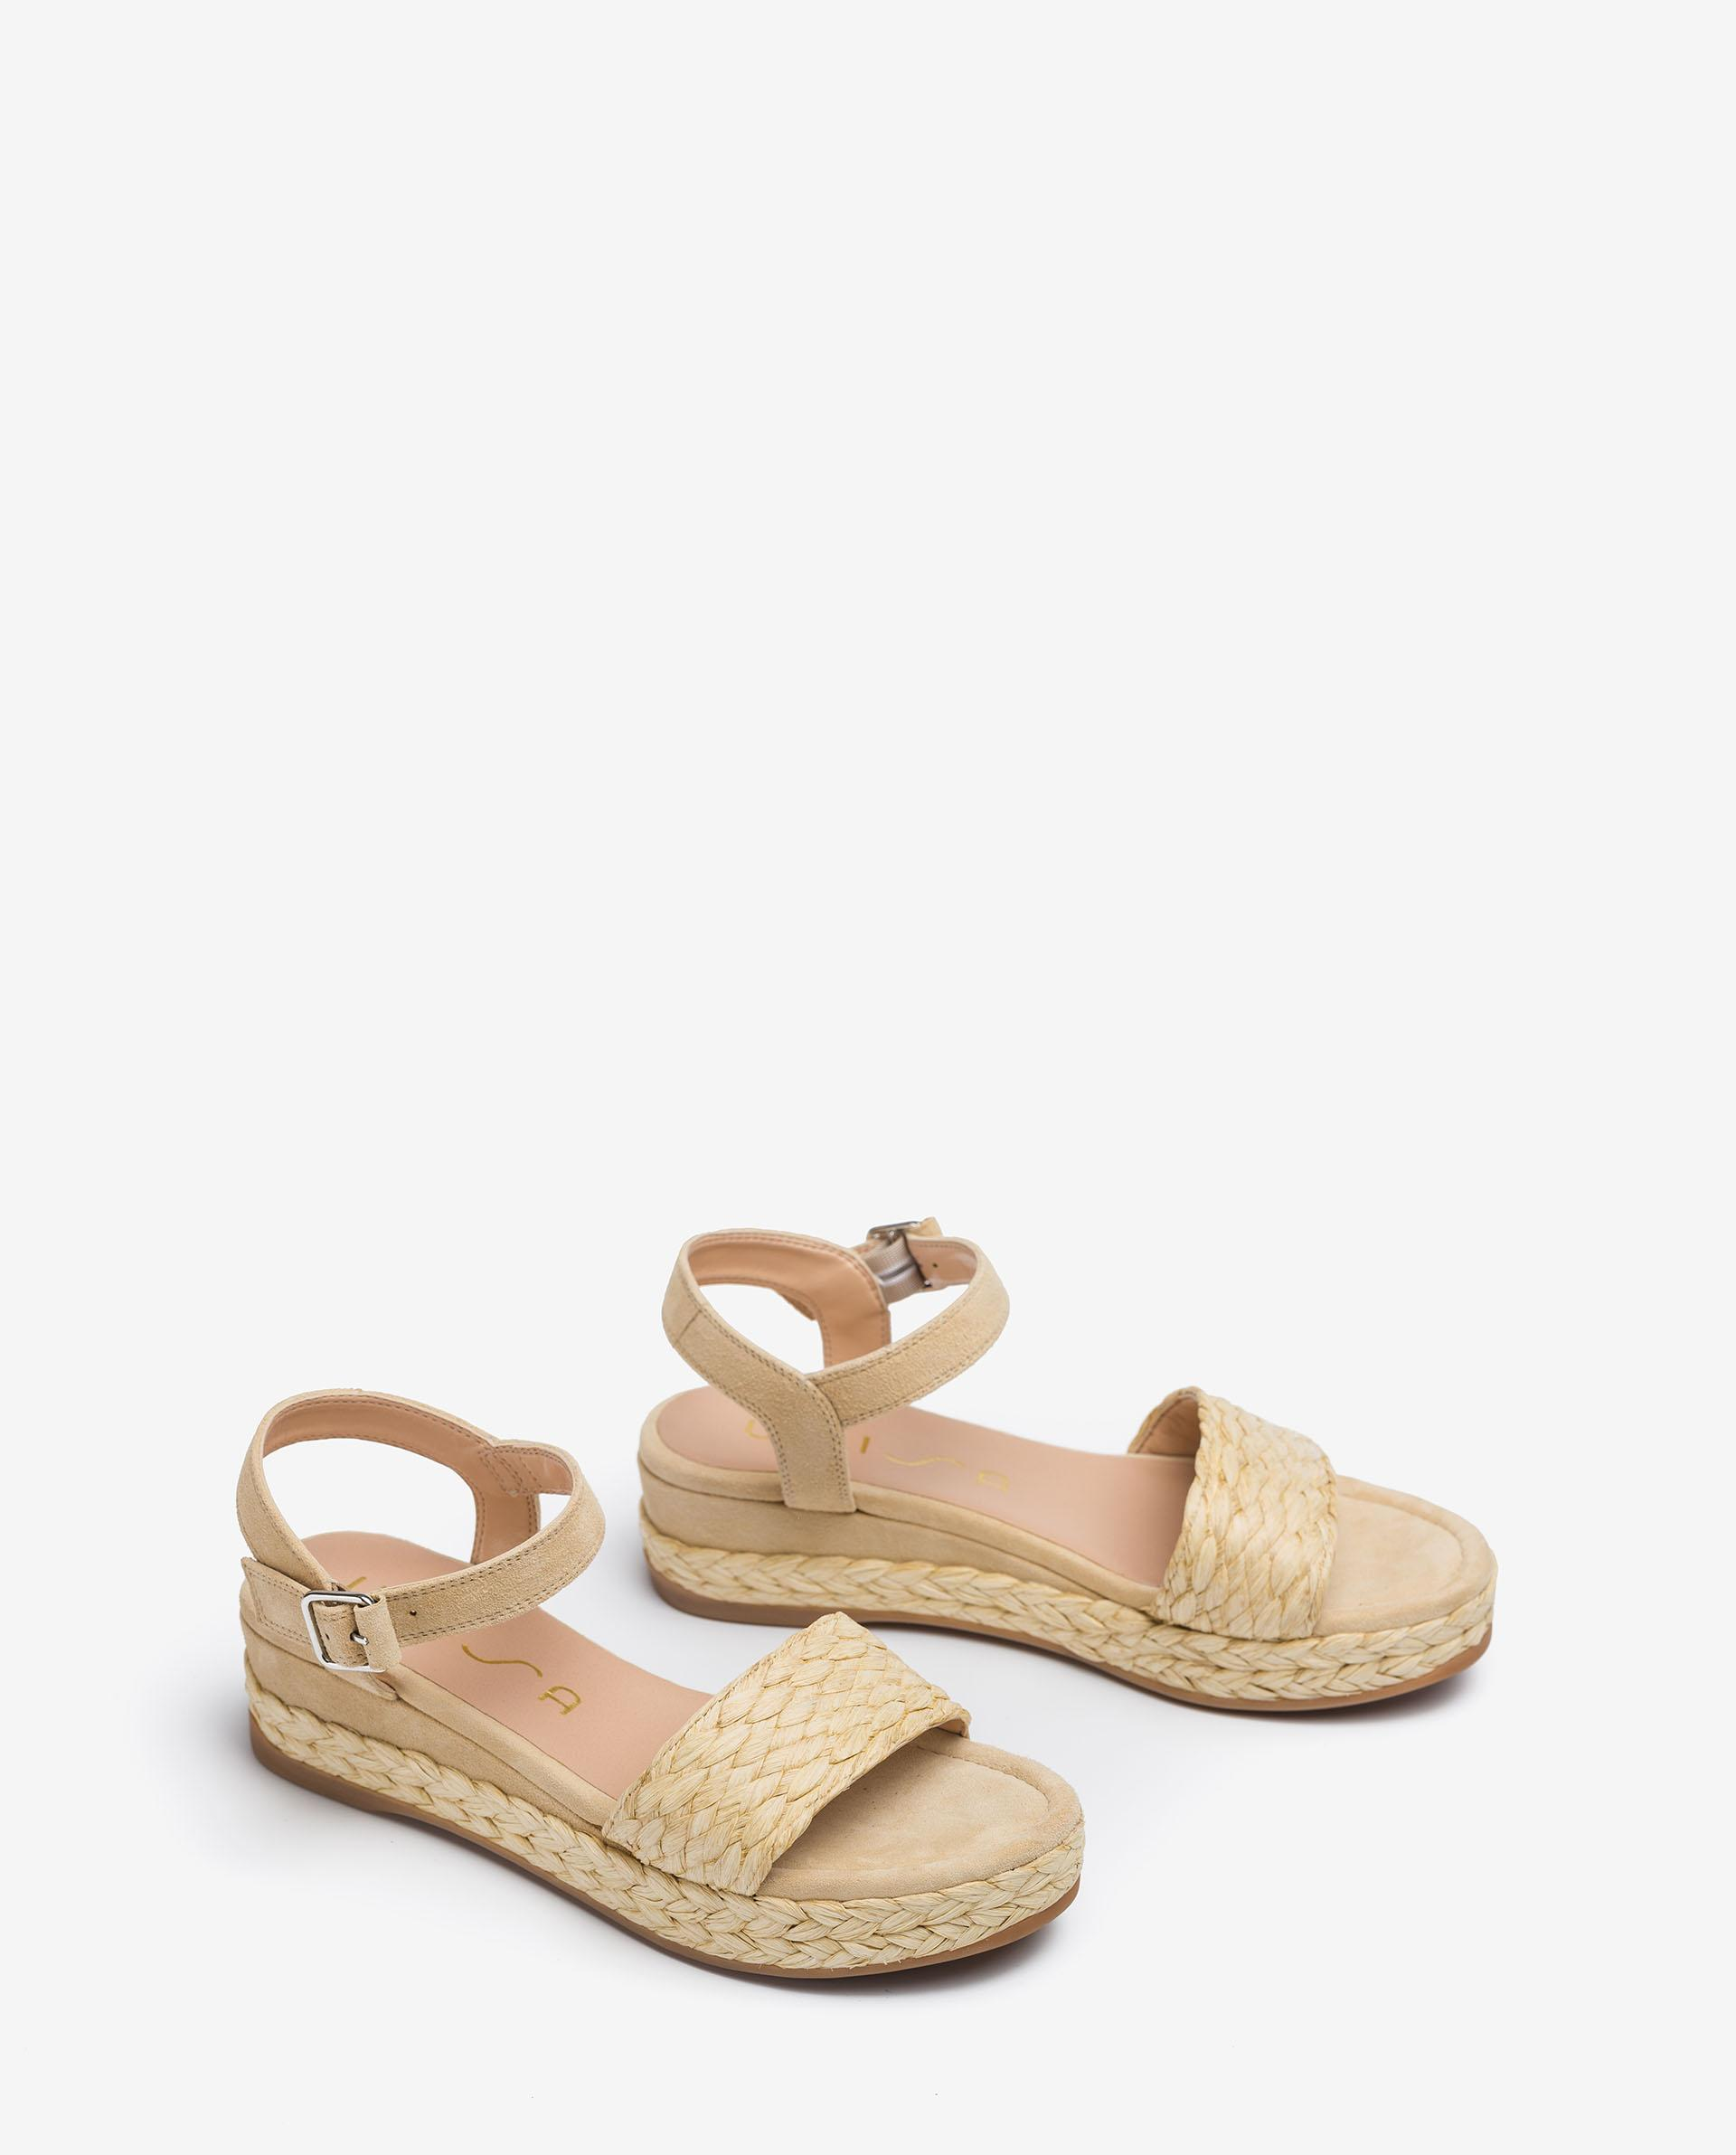 UNISA Braided kid suede sandals GABIR_21_KS 2